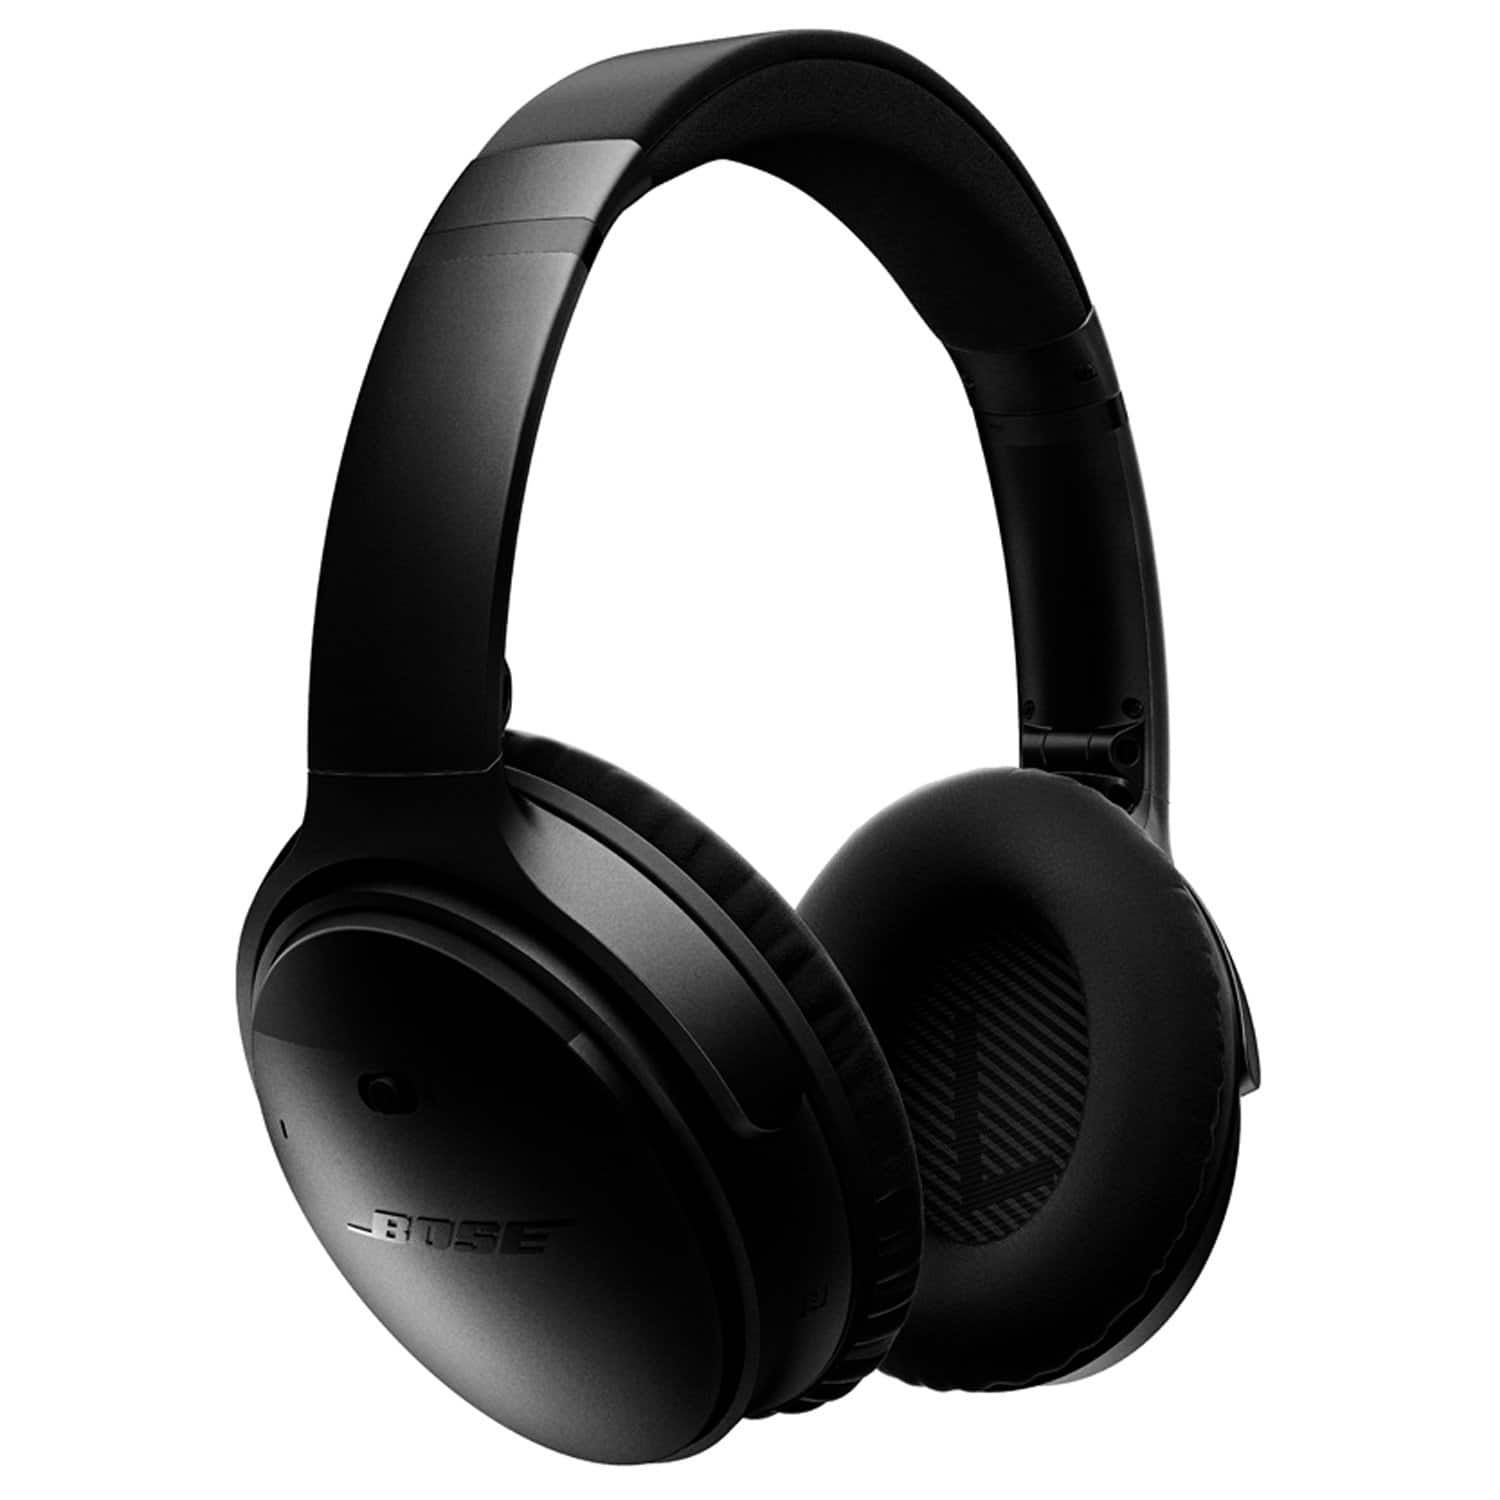 Bose QuietComfort 35 Wireless Headphones (Black) $279.99 + Free Shipping (through mobile app)